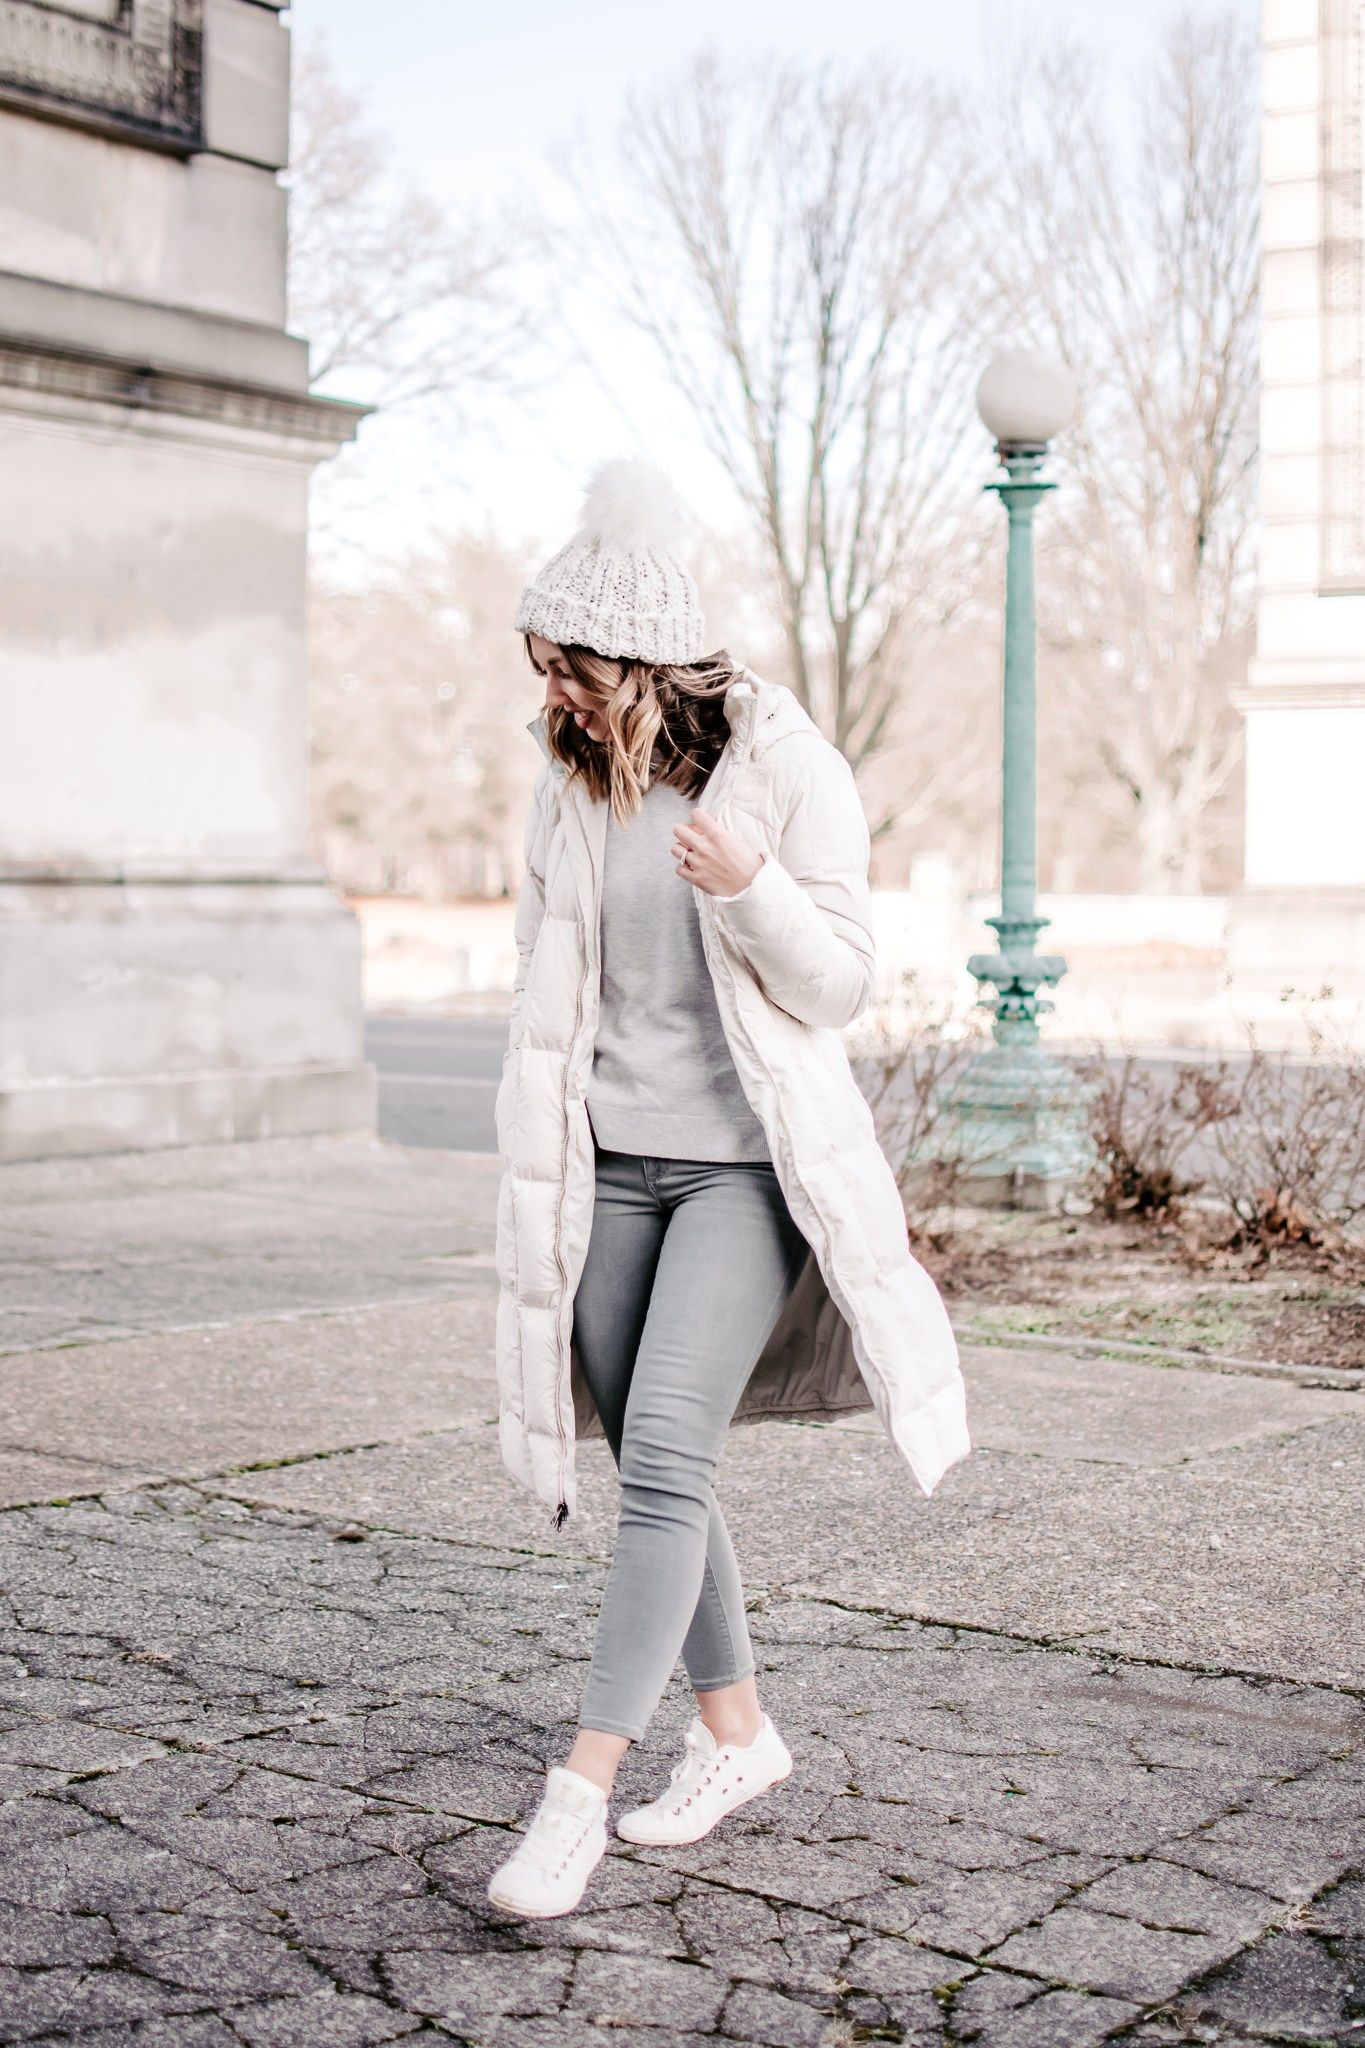 White Puffer Coat Outfit Warm Winter Outfit Casual Winter Outfit Grey Jeans White Con Puffer Coat Outfit Casual Winter Outfits White Puffer Coat Outfit [ 2048 x 1365 Pixel ]